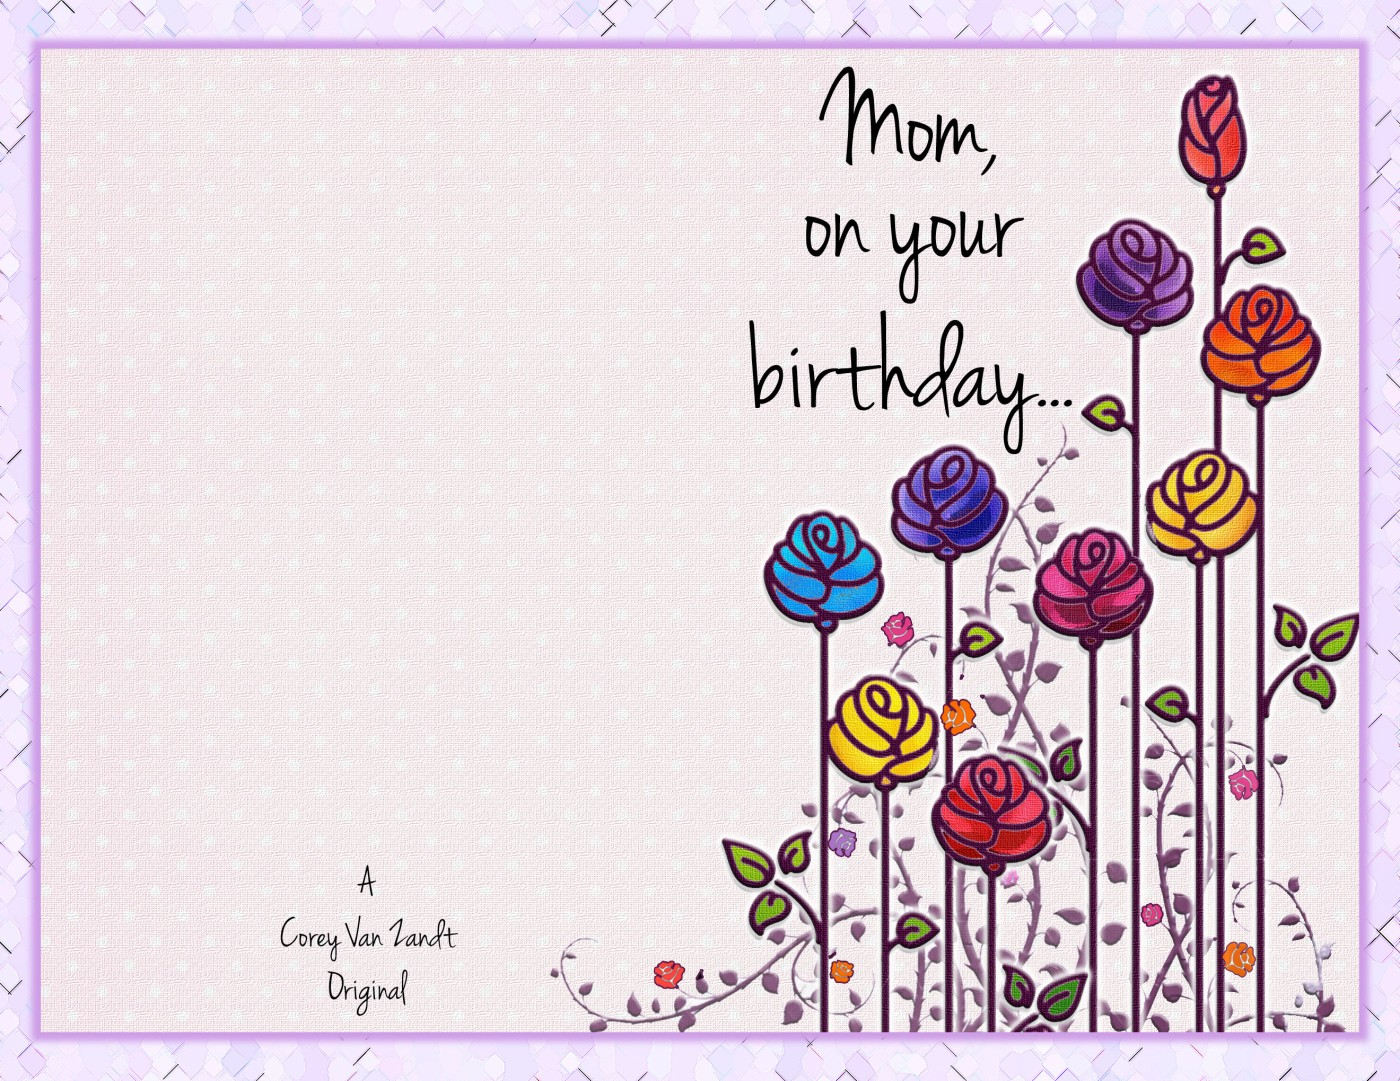 Nifty image in birthday cards for mom printable